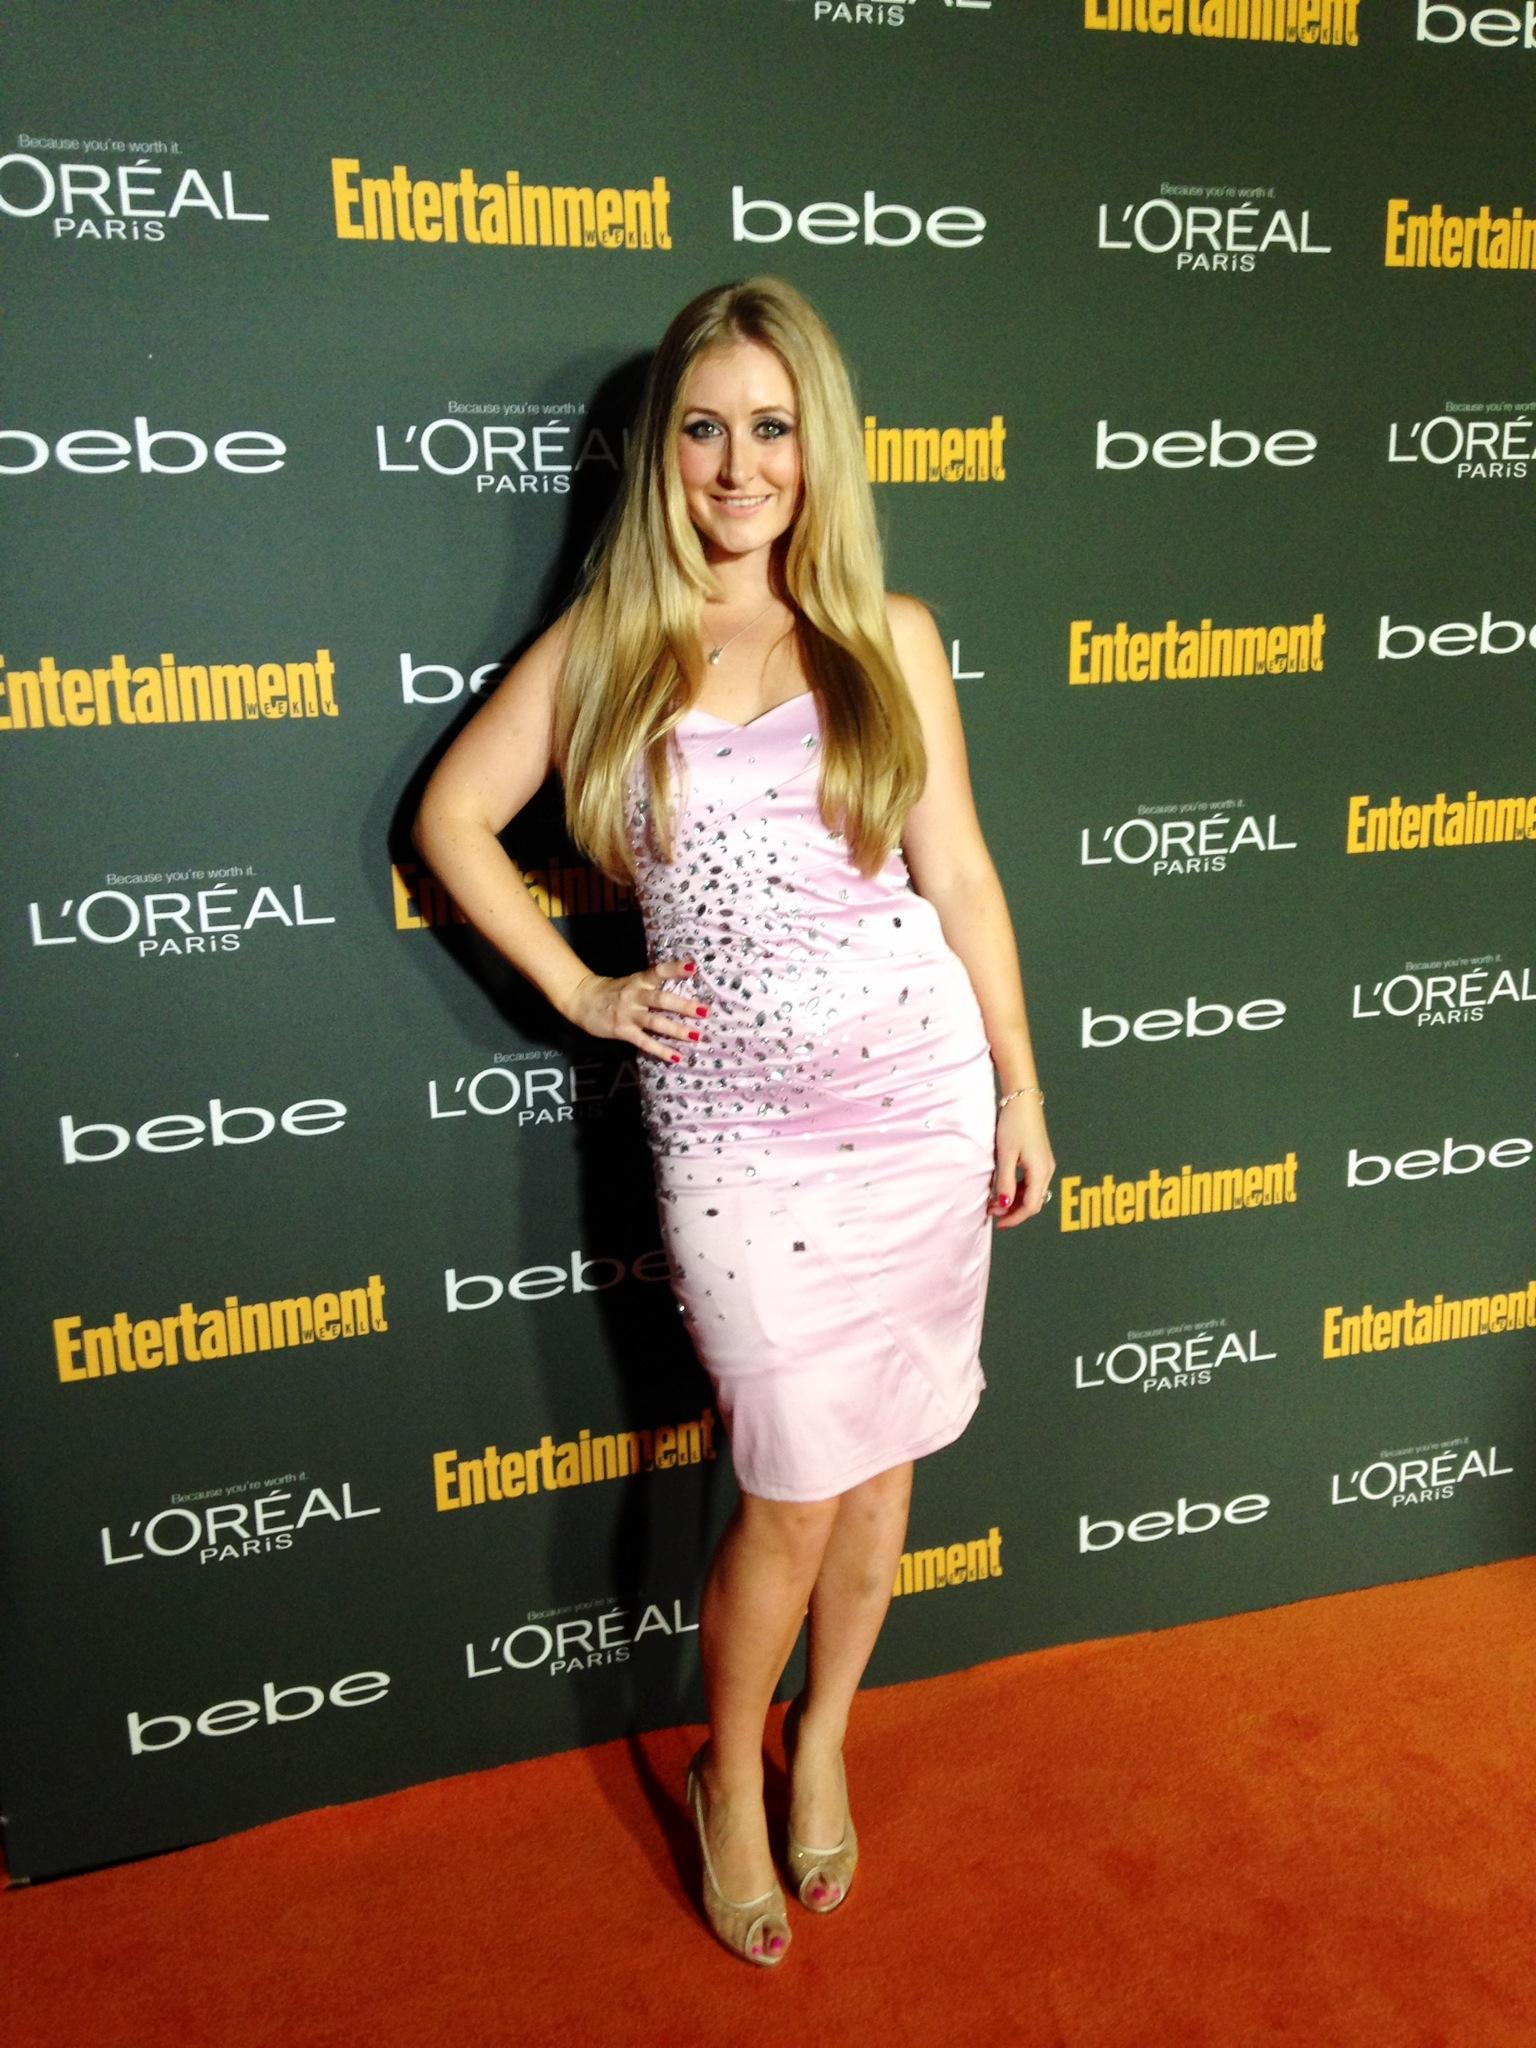 On the red carpet - Katie Amess in Los Angeles